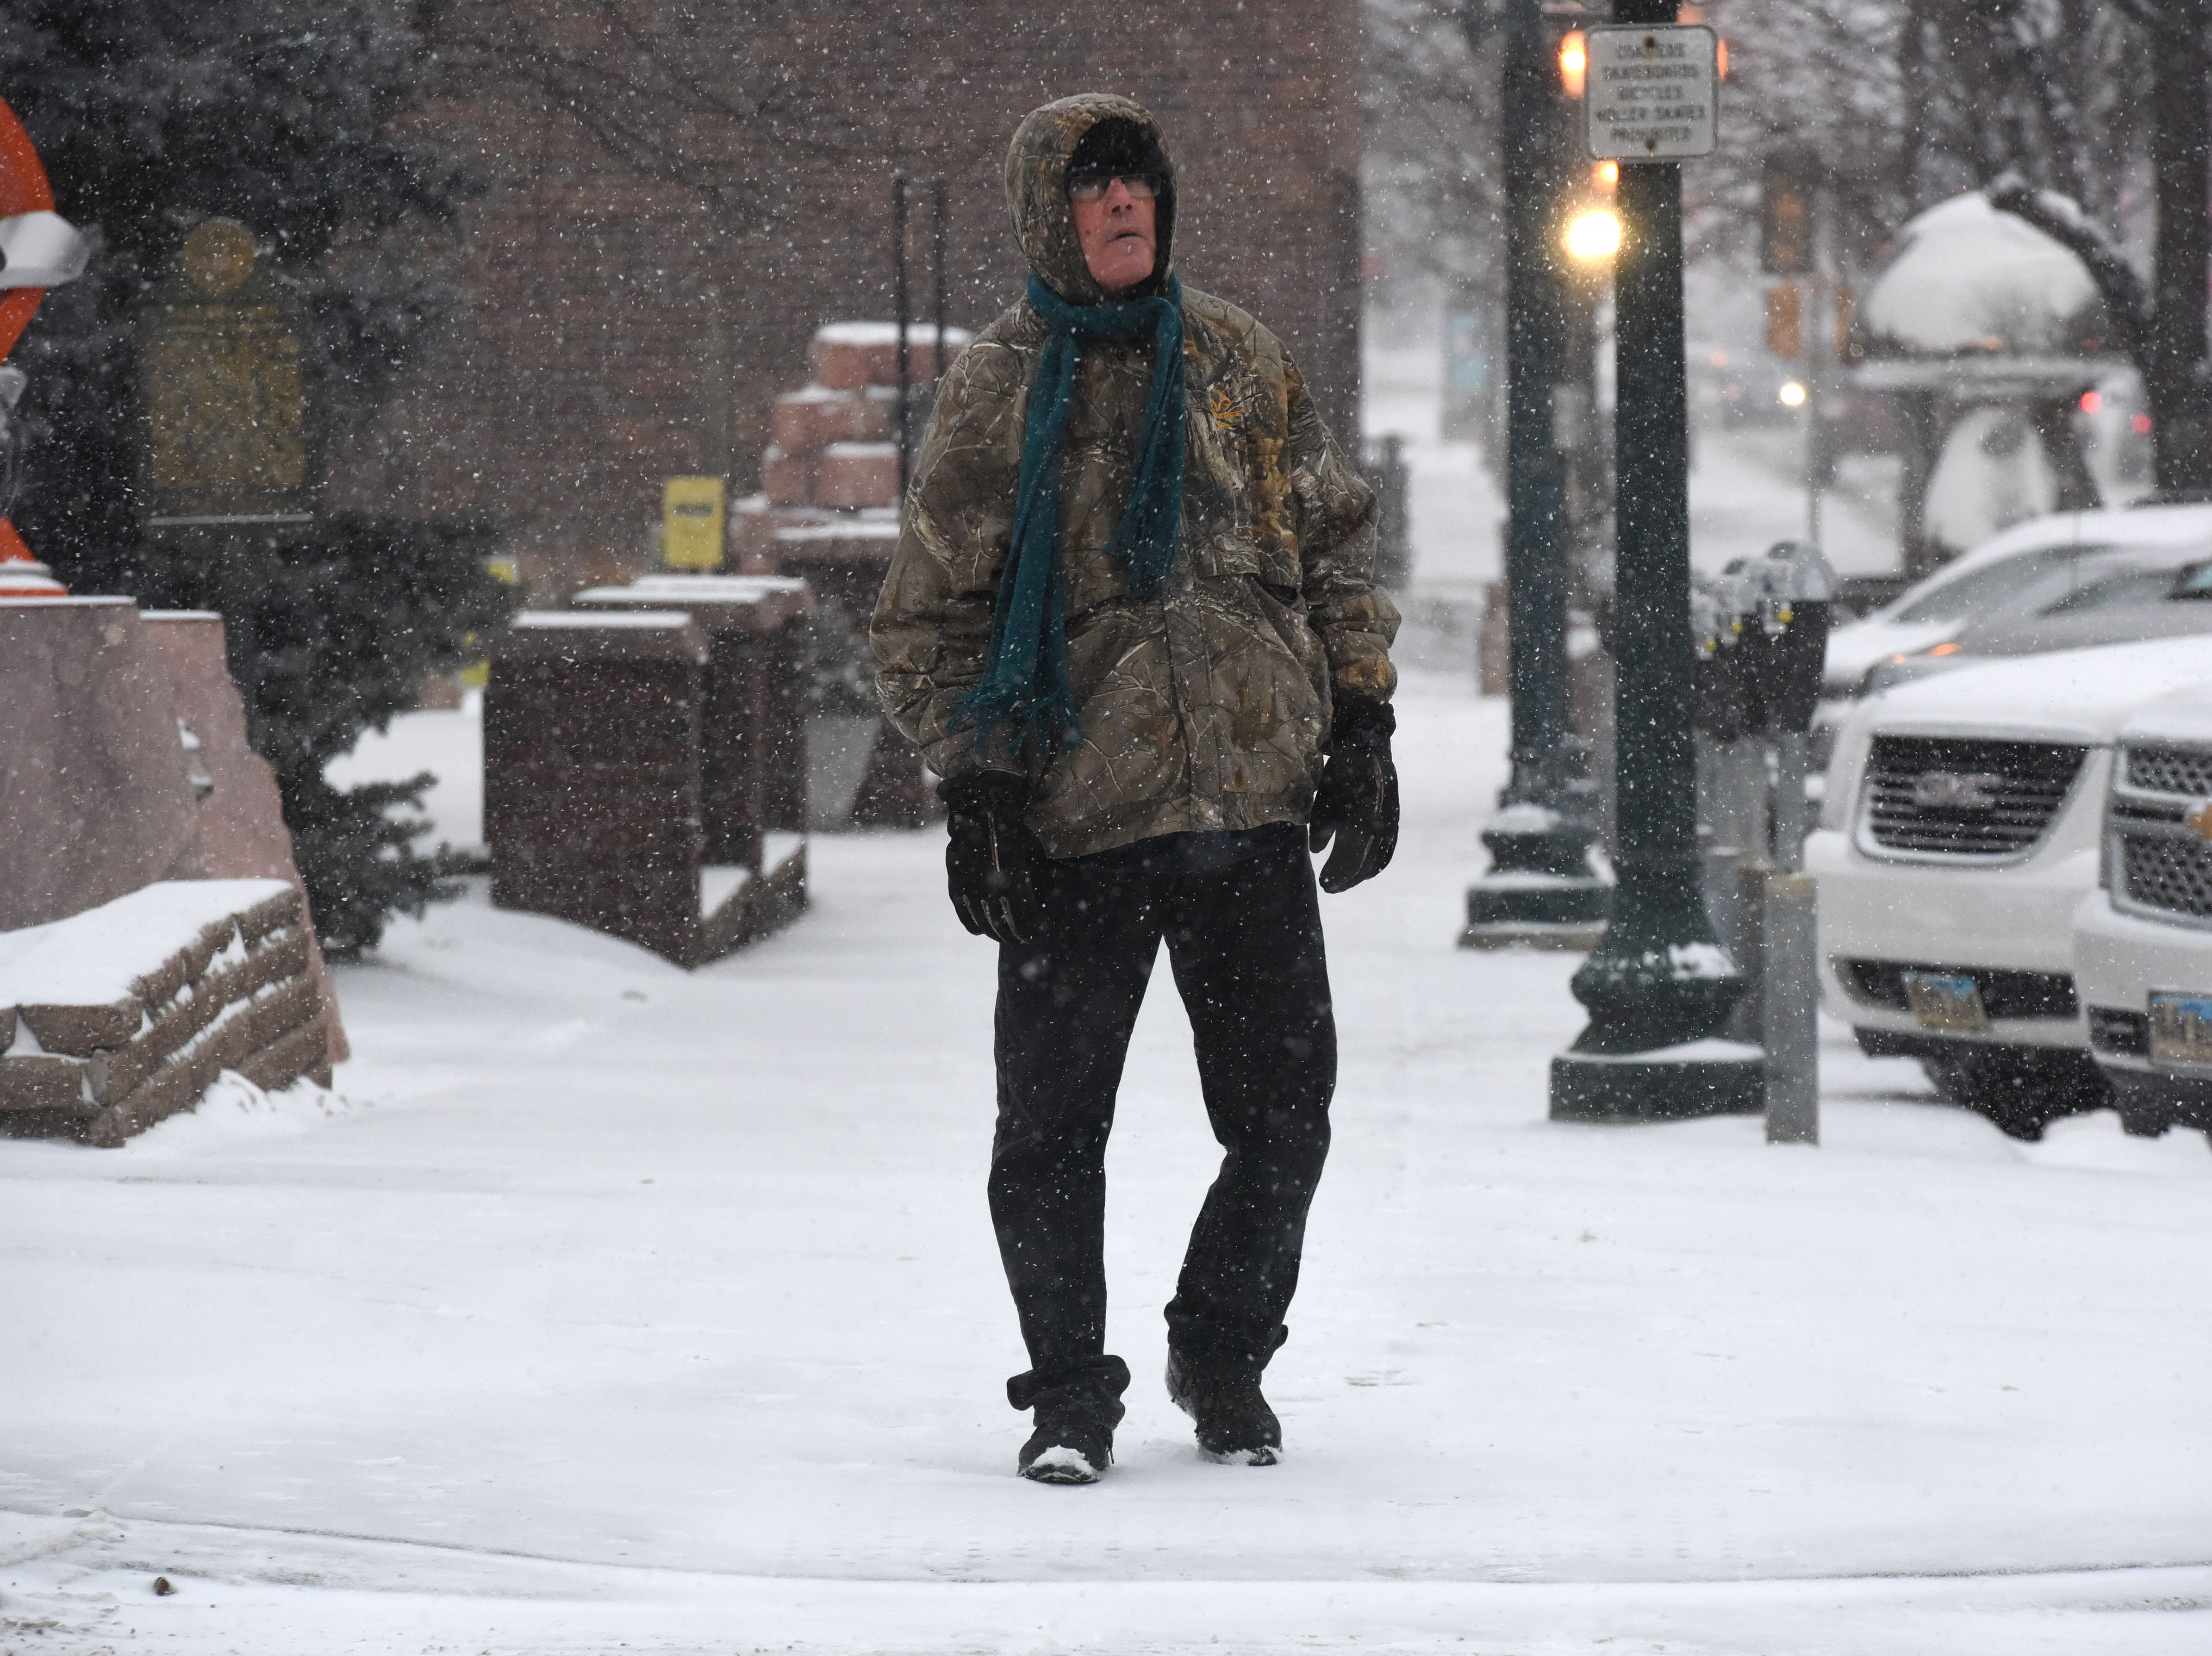 A man walks downtown during a snow storm in Sioux Falls, S.D., Friday, Jan. 18, 2019.